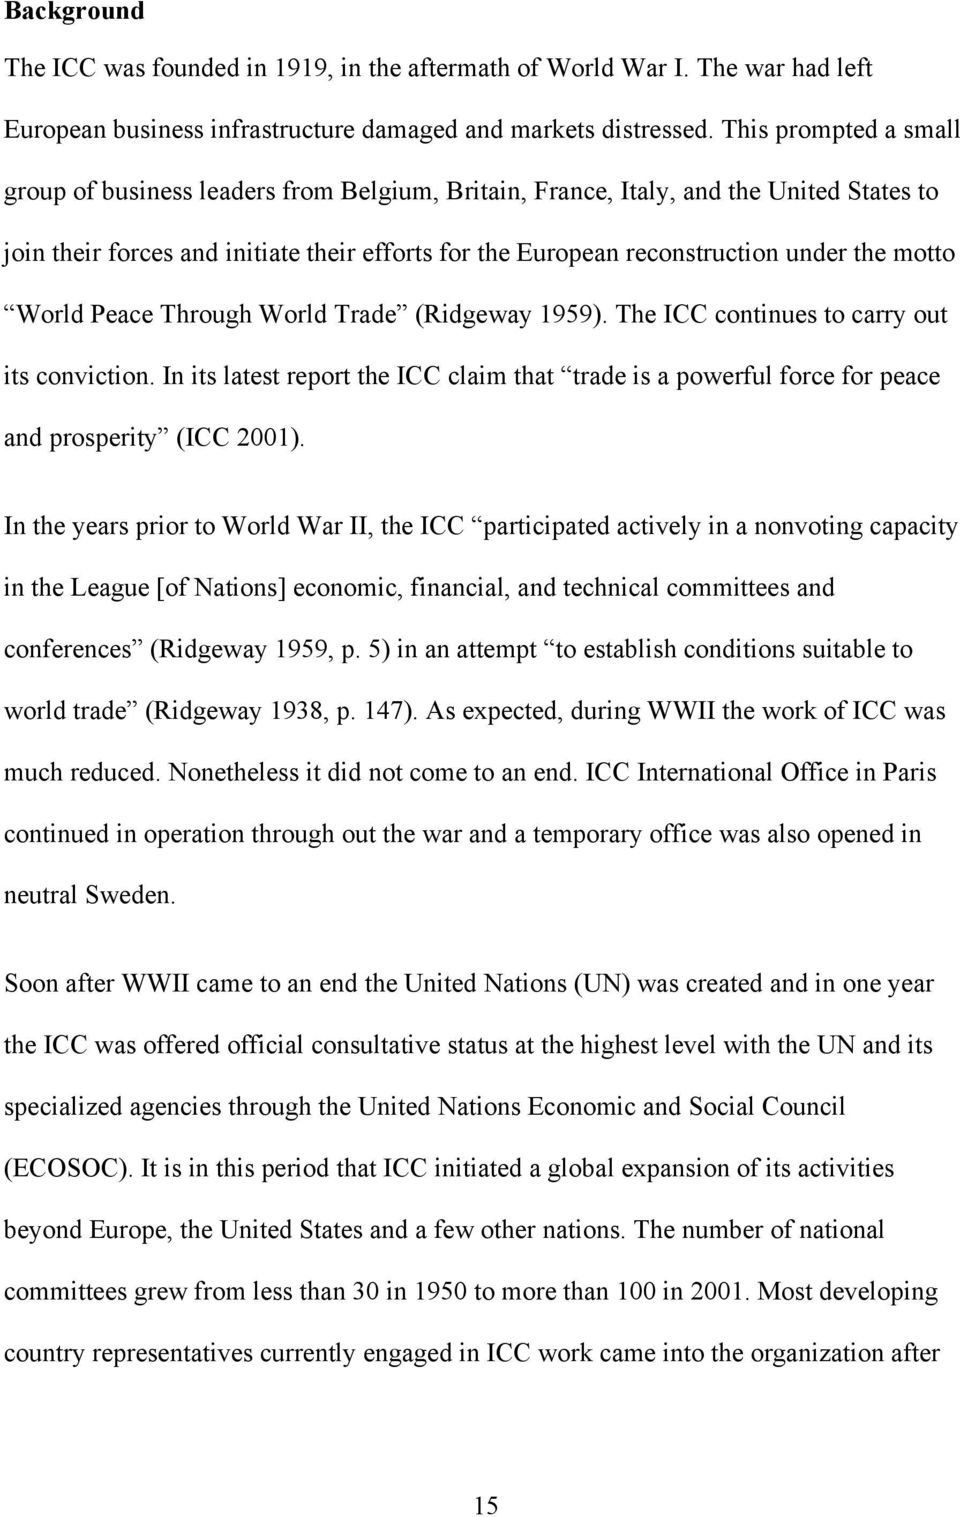 motto World Peace Through World Trade (Ridgeway 1959). The ICC continues to carry out its conviction.